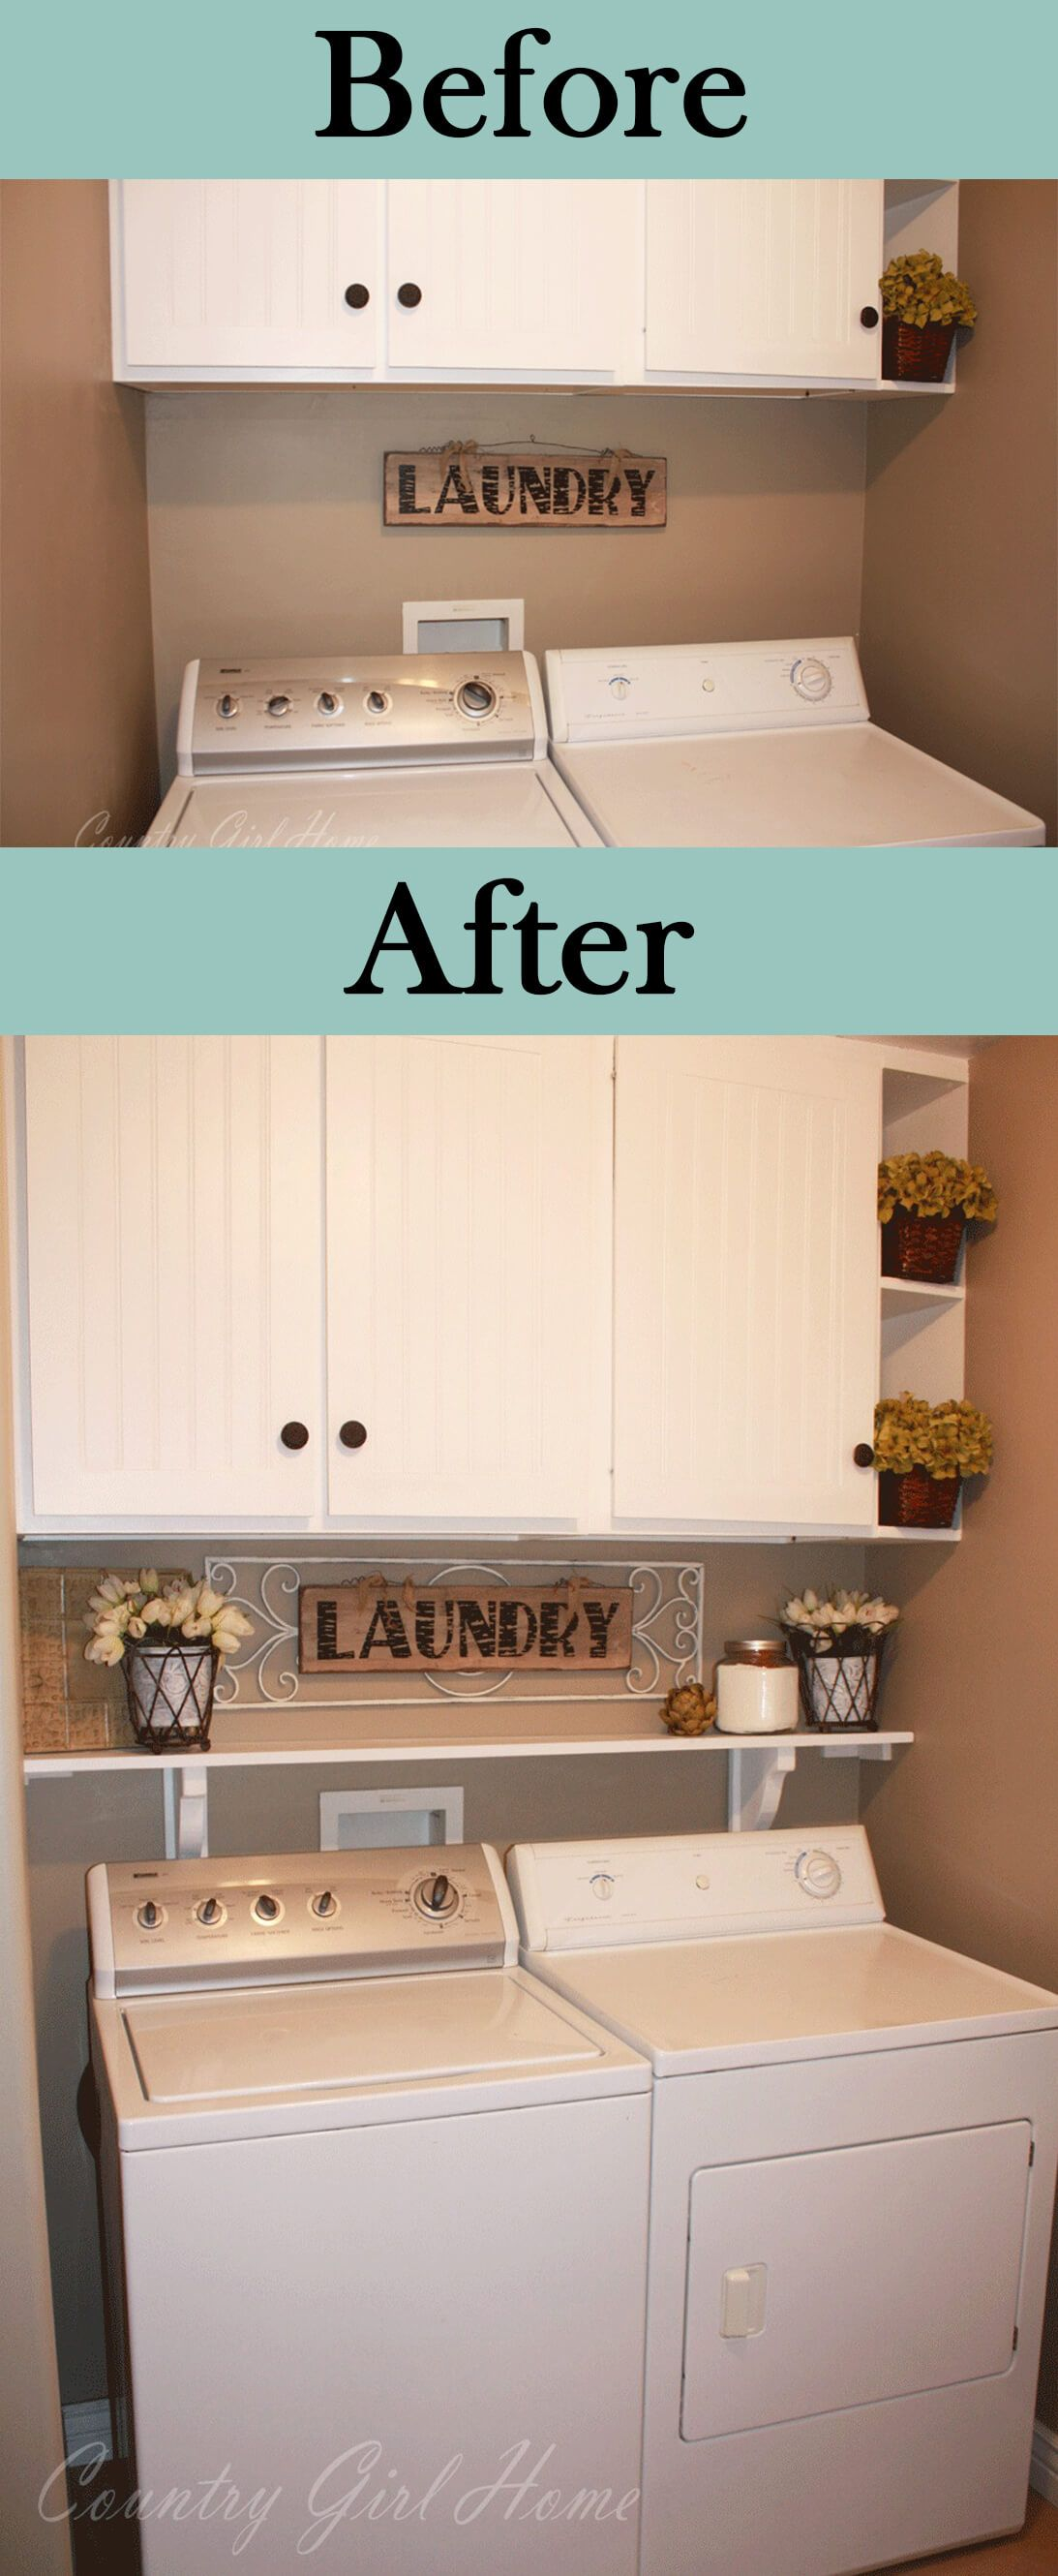 Laundry room install a shelf above washer dryer for more storage Use cute baskets to hold supplies Laundry Pinterest